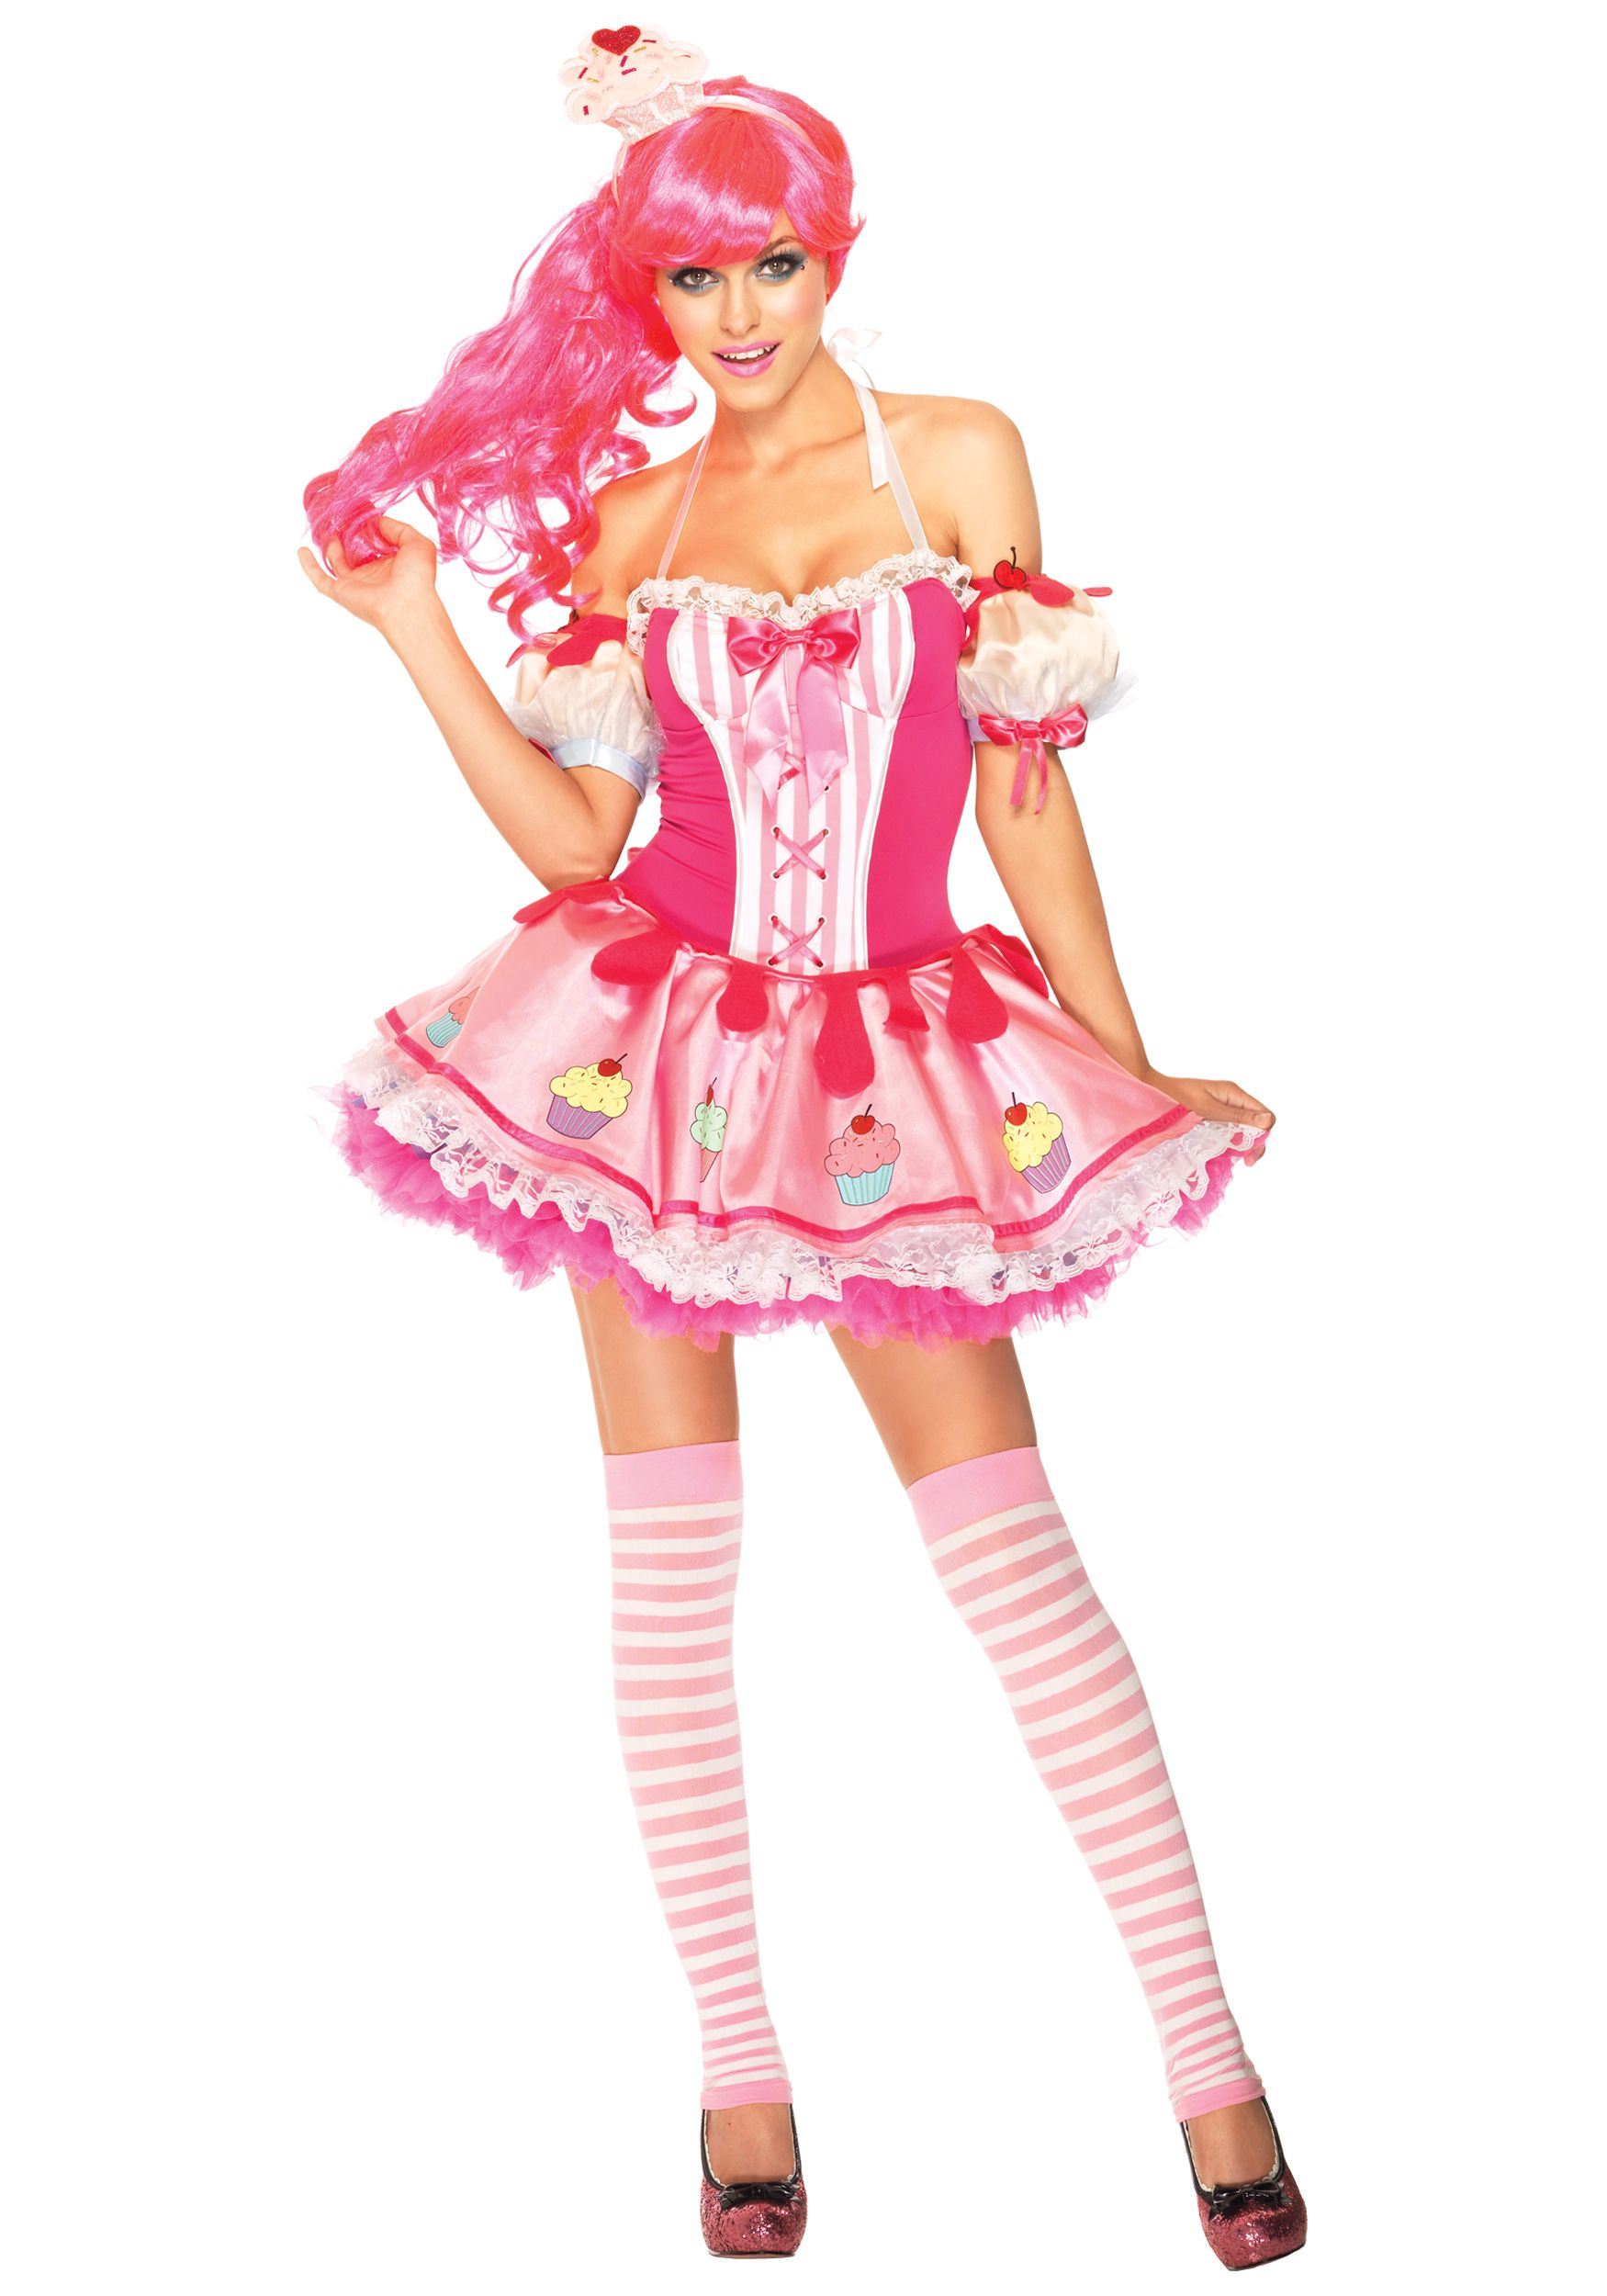 Cupcake Costume I want something like this for Halloween